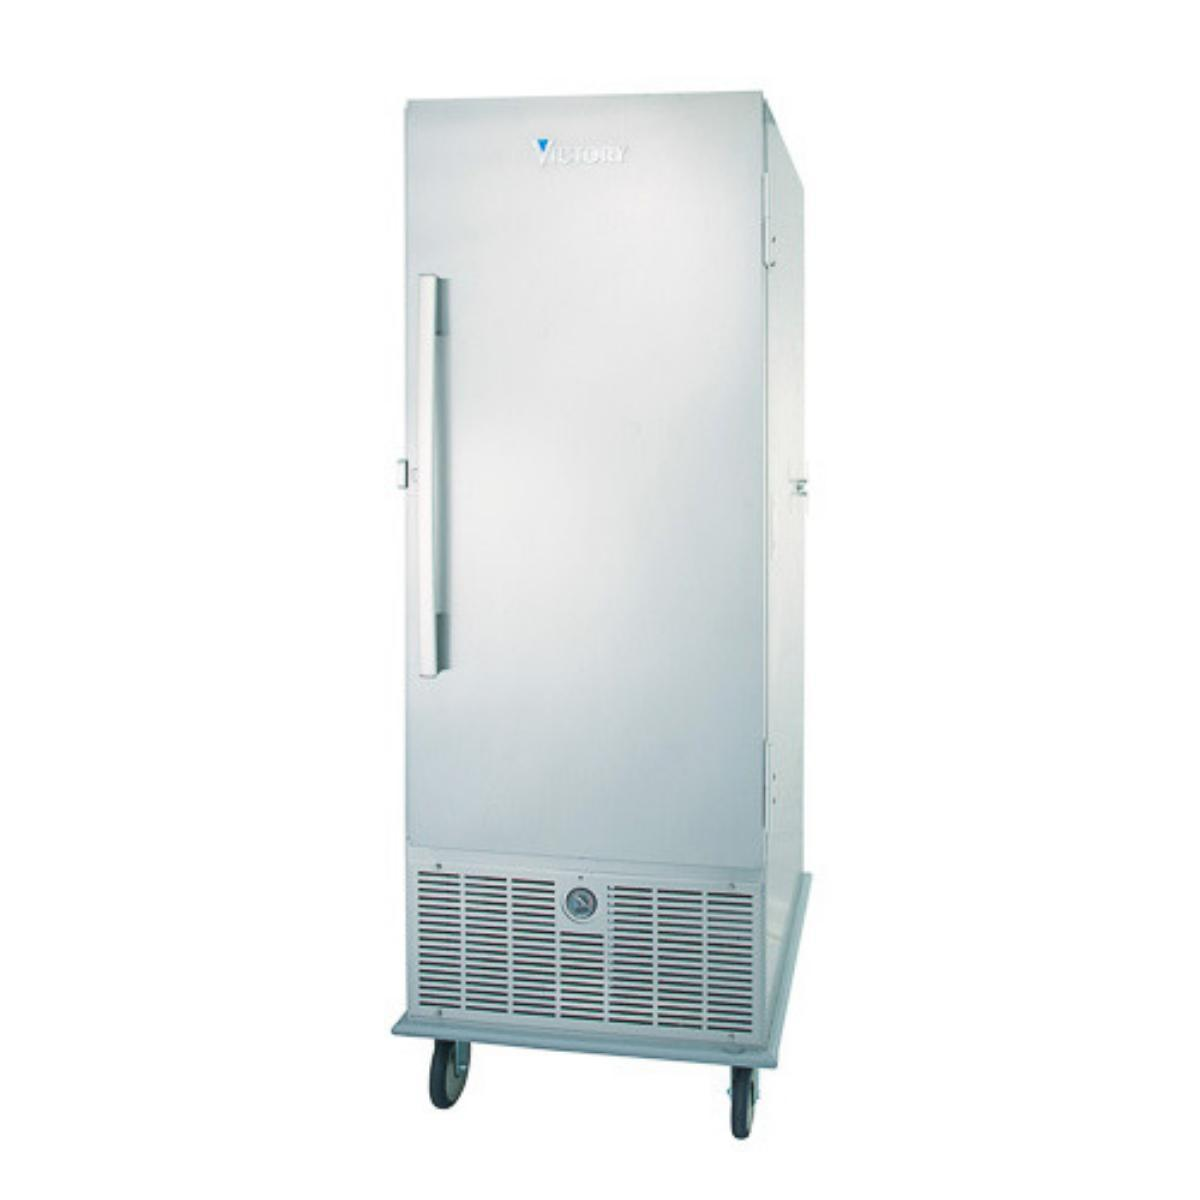 Victory ACRS-1D-S1-STS UltraSpec Series Air Curtain Refrigerator